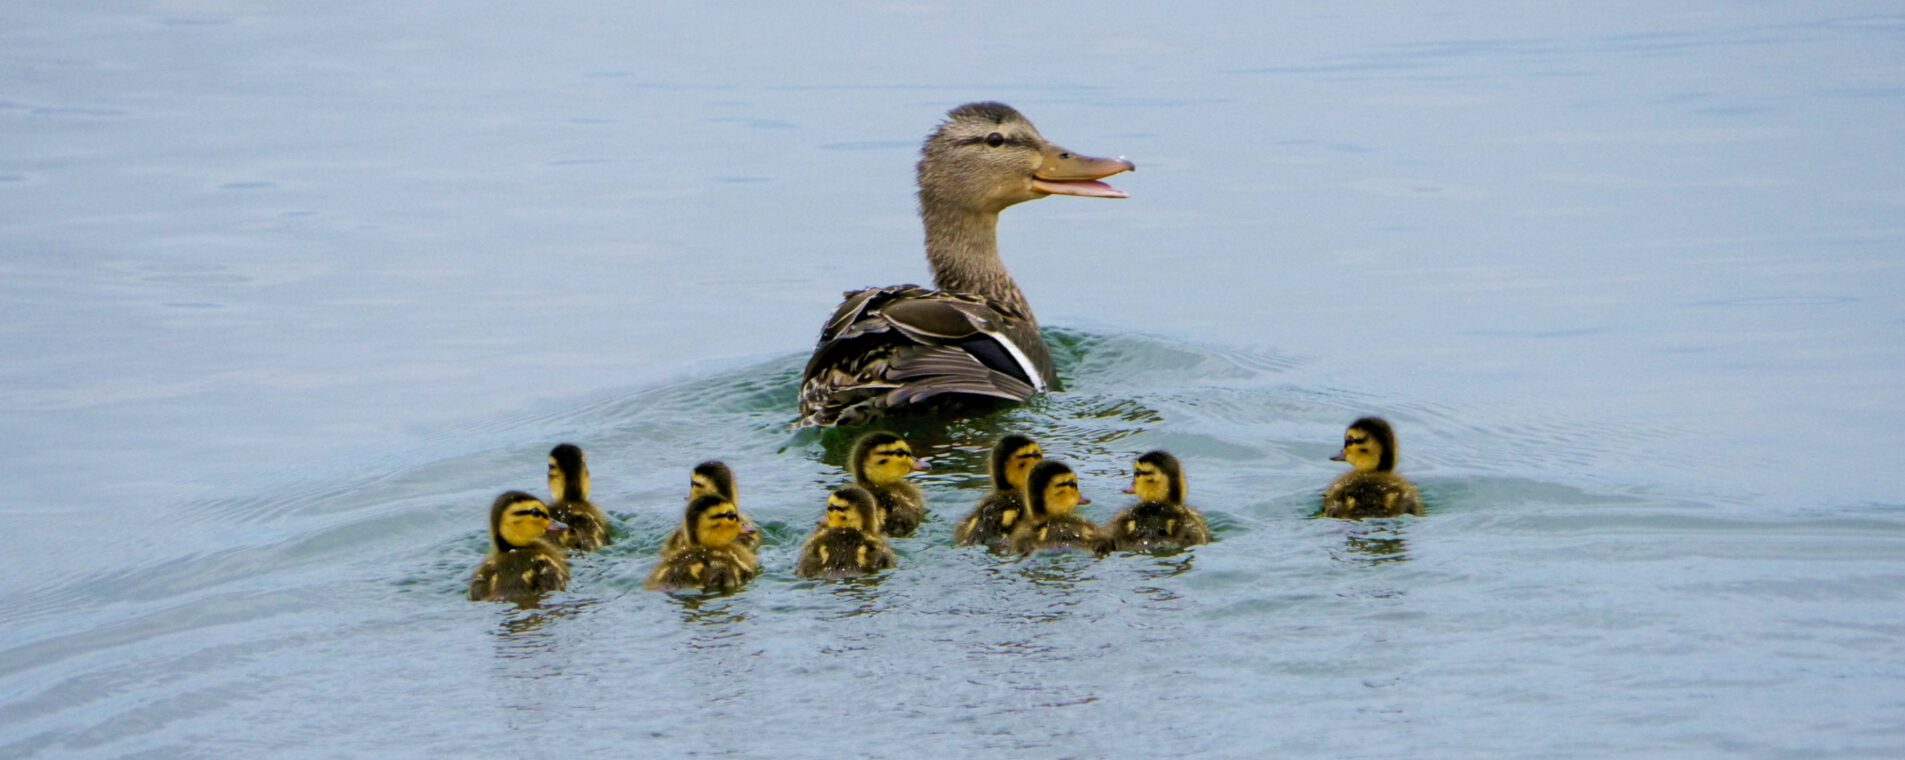 Family of ducks swimming in the water